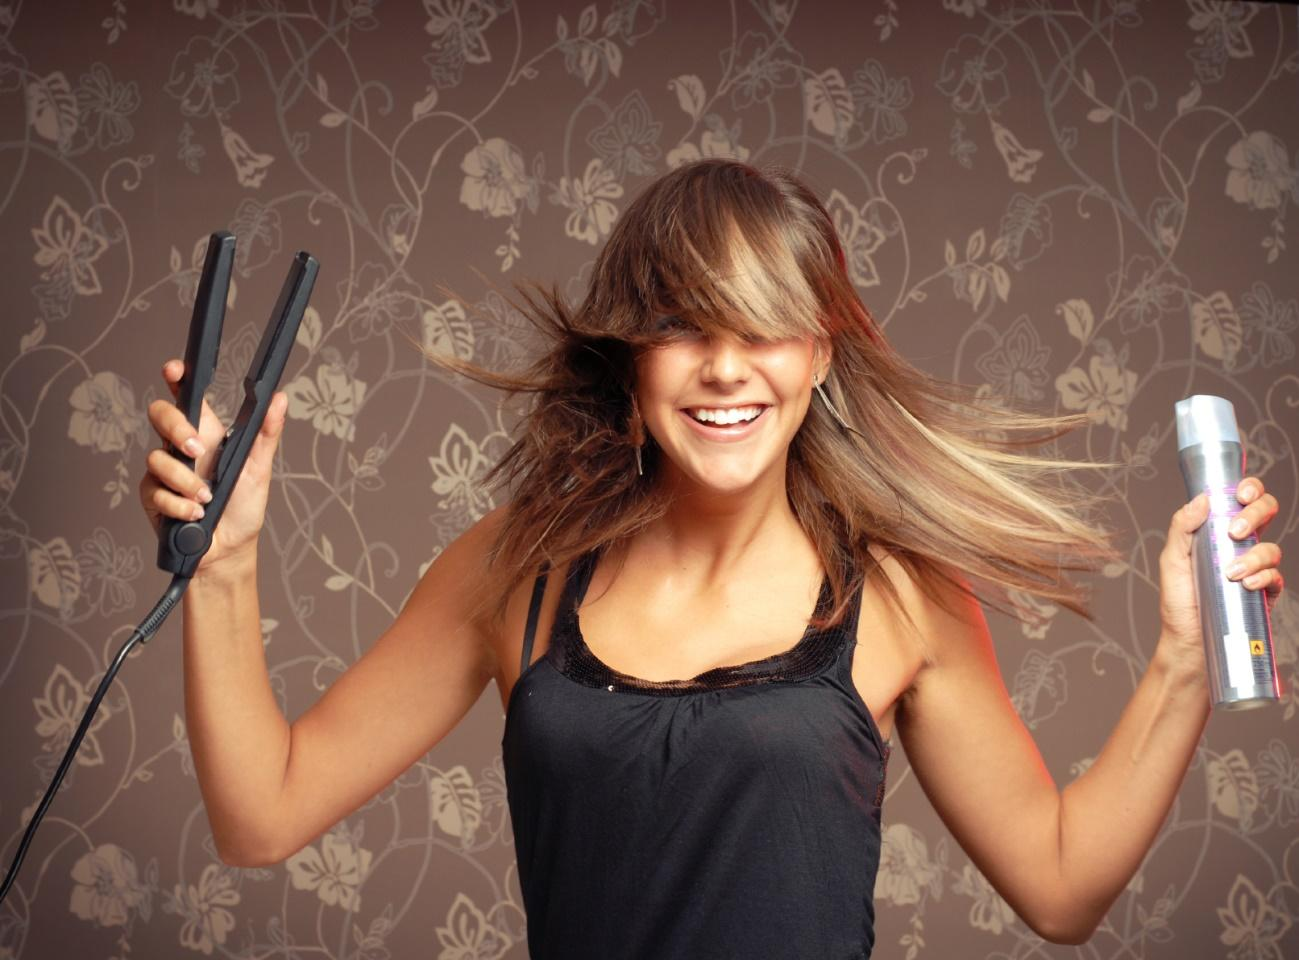 http://thekindtips.com/wp-content/uploads/2013/03/girl-with-flat-iron-and-spray-for-web-site.jpg